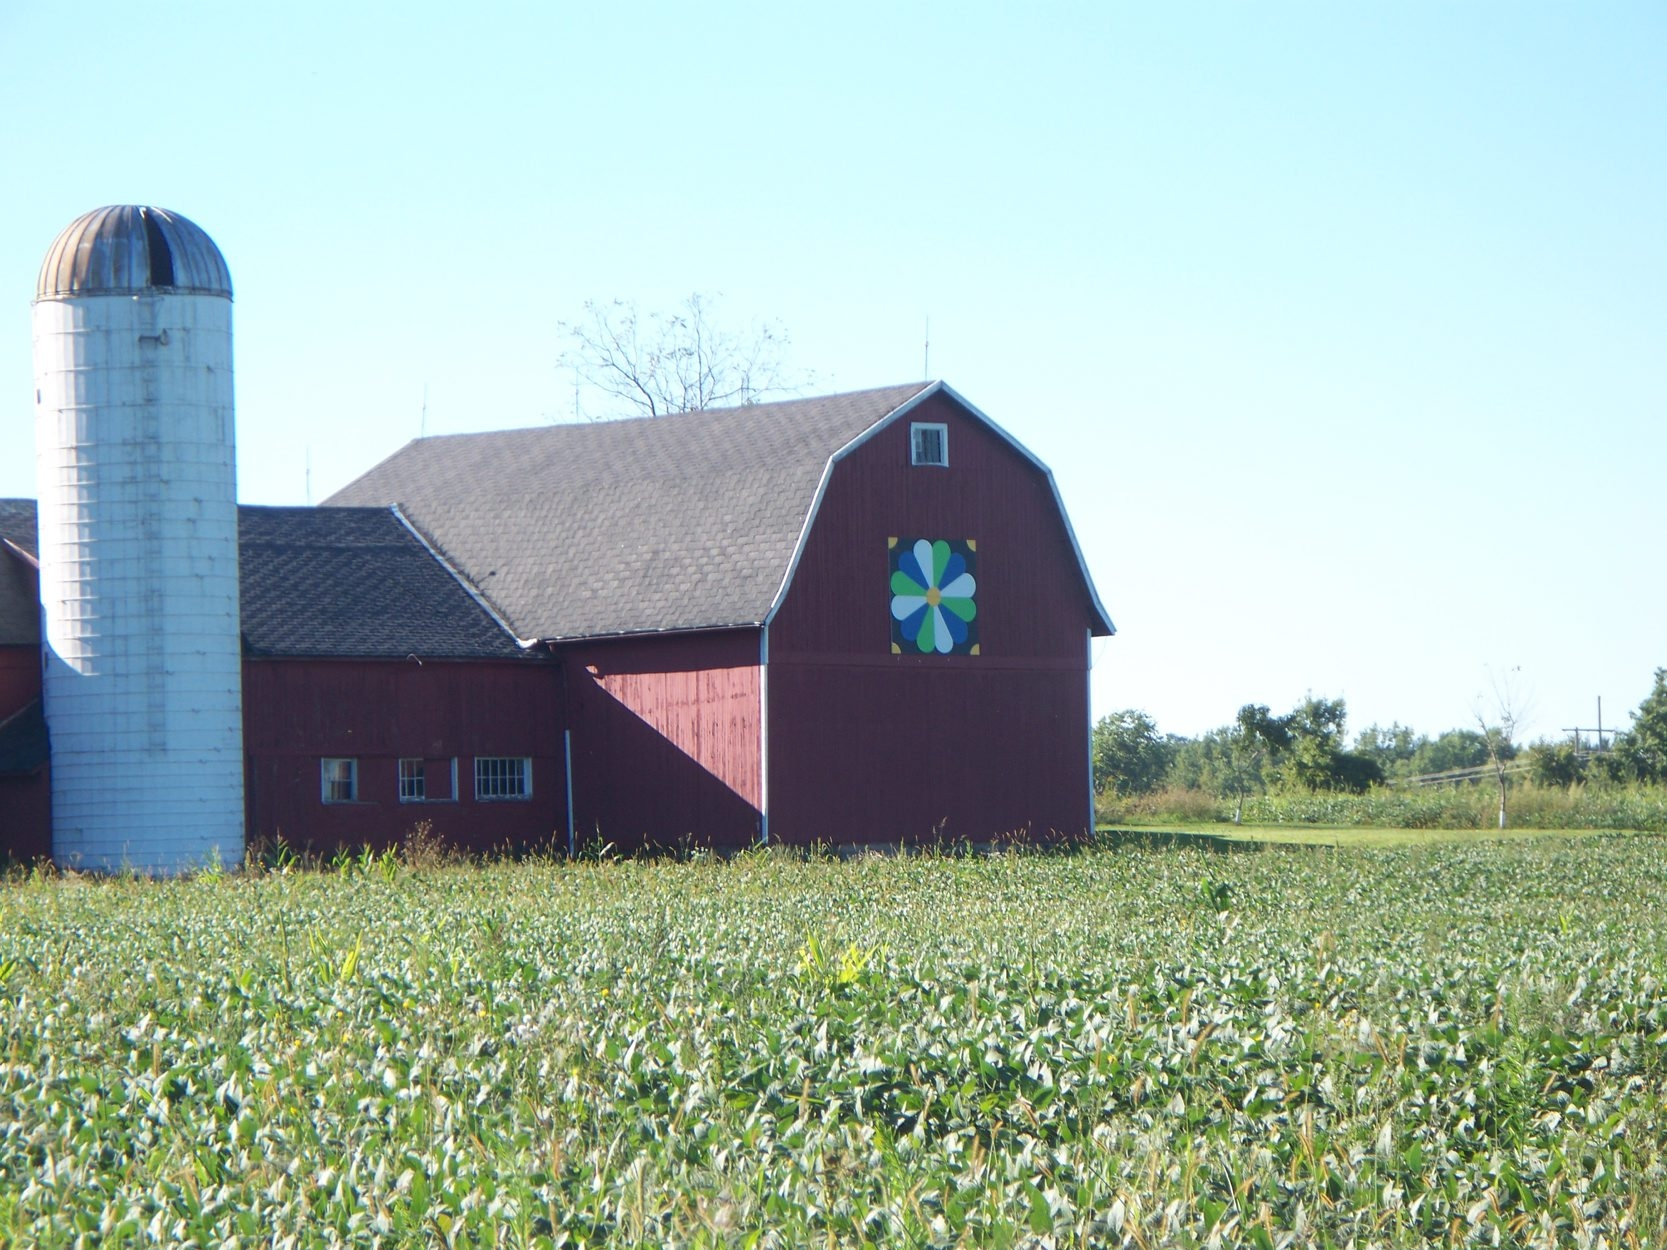 There are four driving trails for viewing the Barn Quilts of LeRoy, which began in 2011 as a project for the town's 2012 bicentennial1